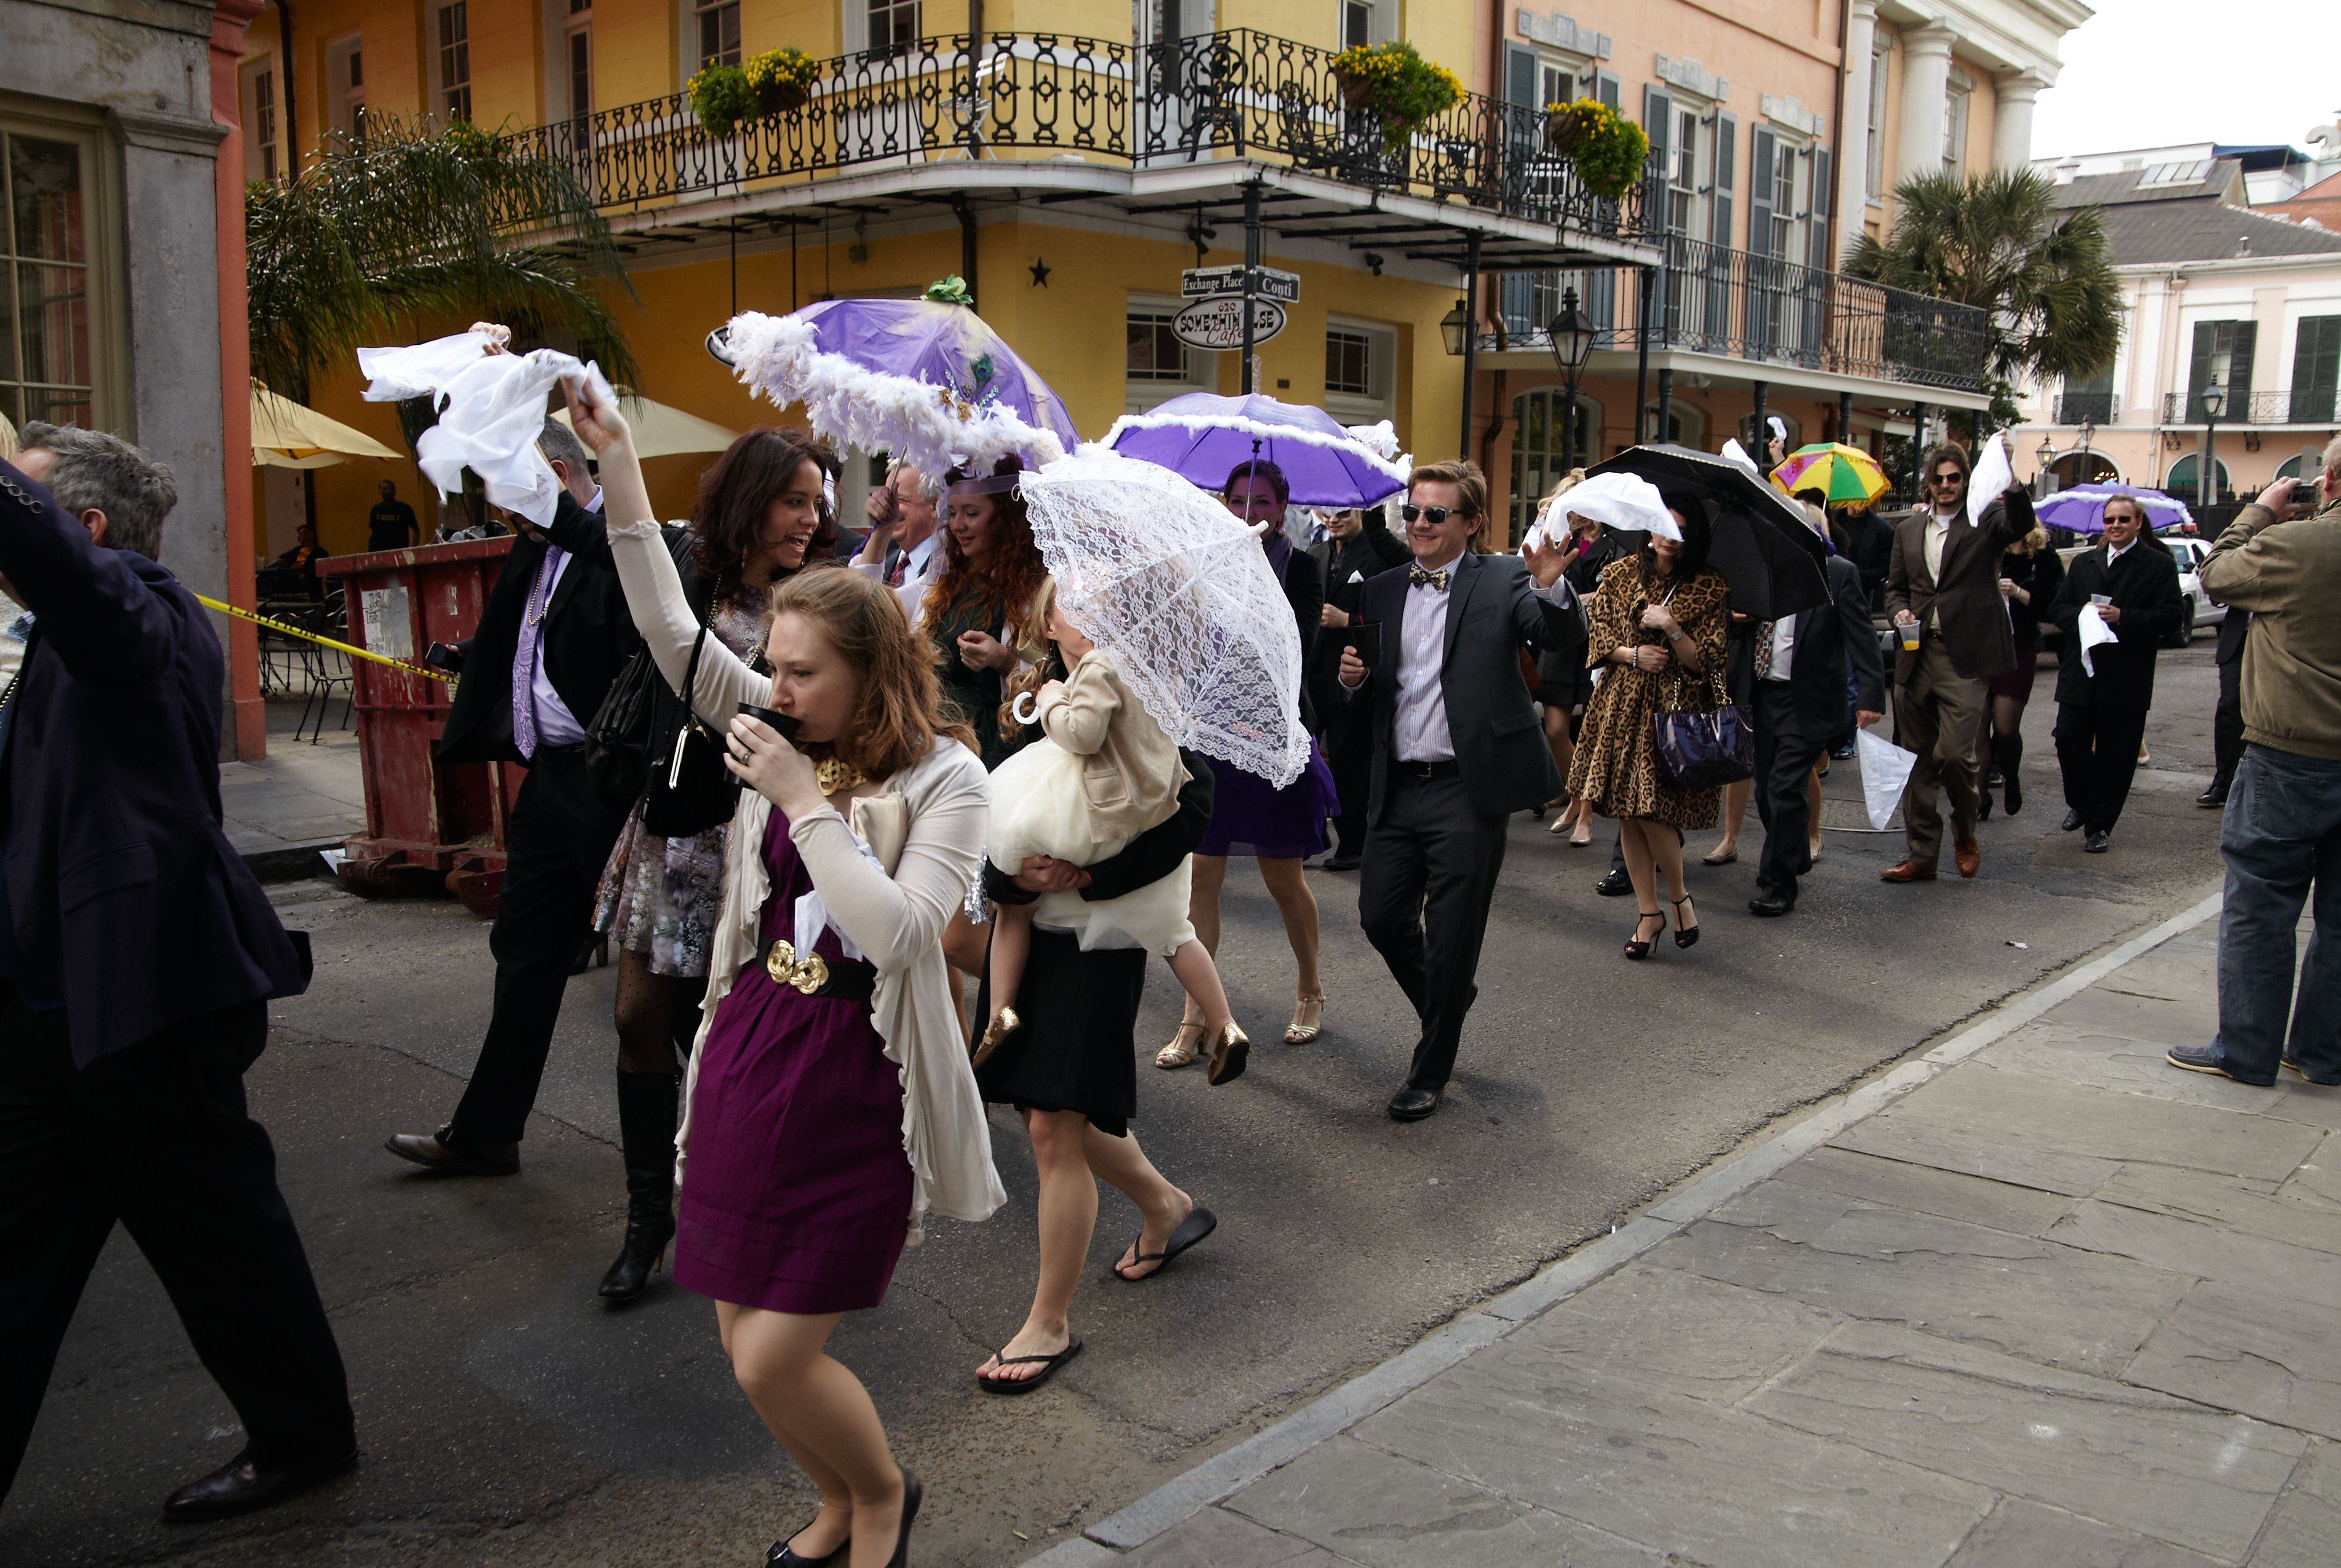 Post Wedding Reception Second Line Parade Through The French Quarter In New Orleans Nola